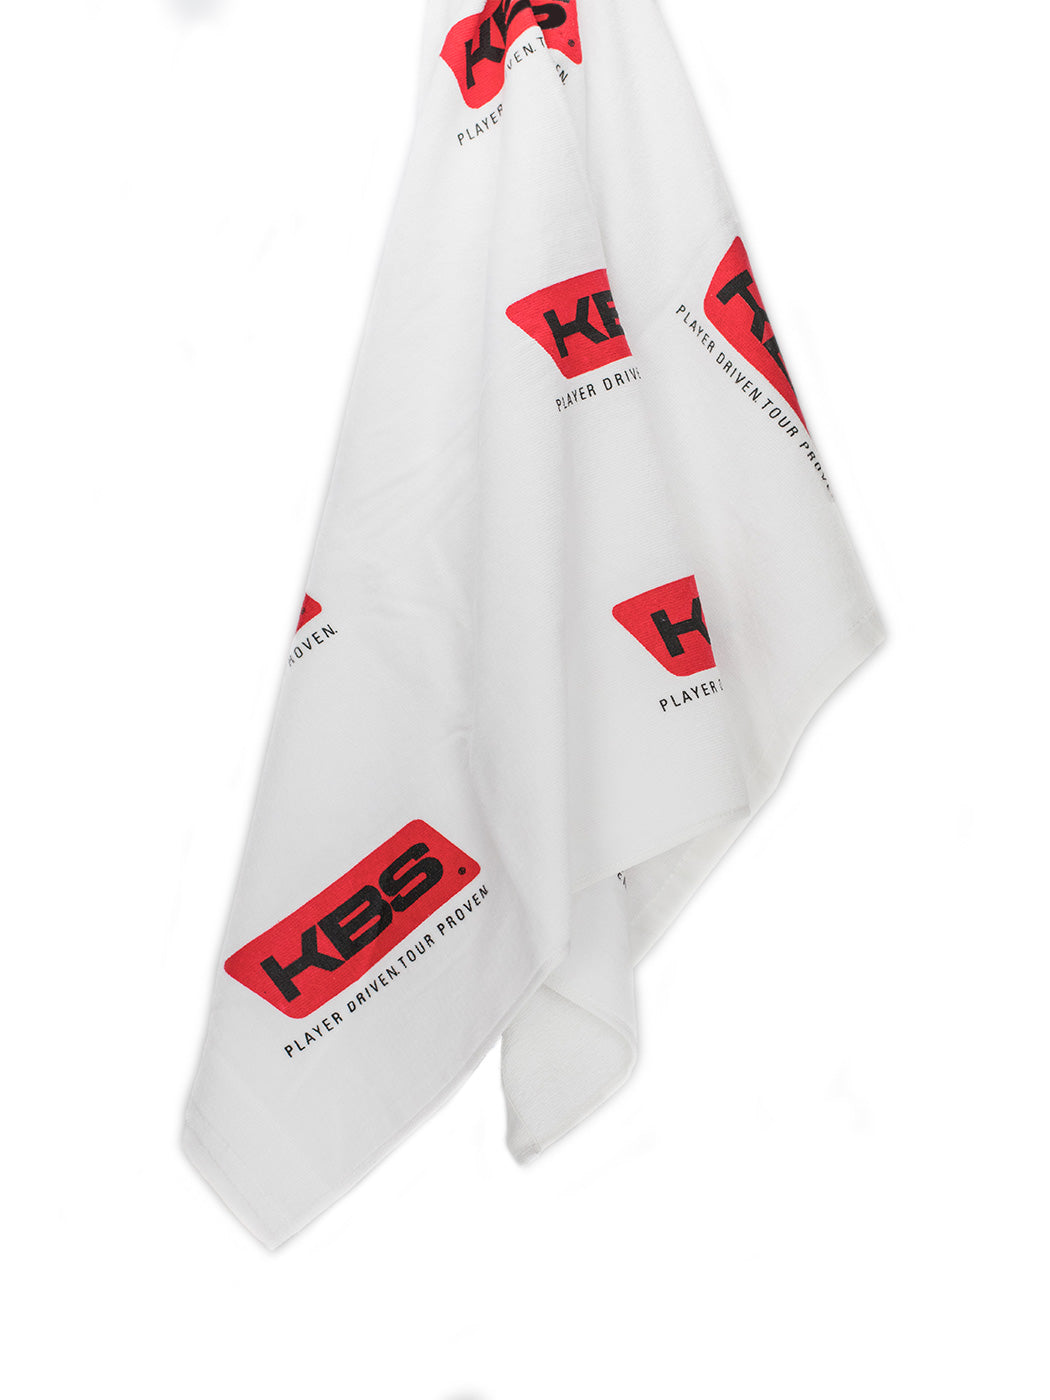 kbs tour towel golf accessory